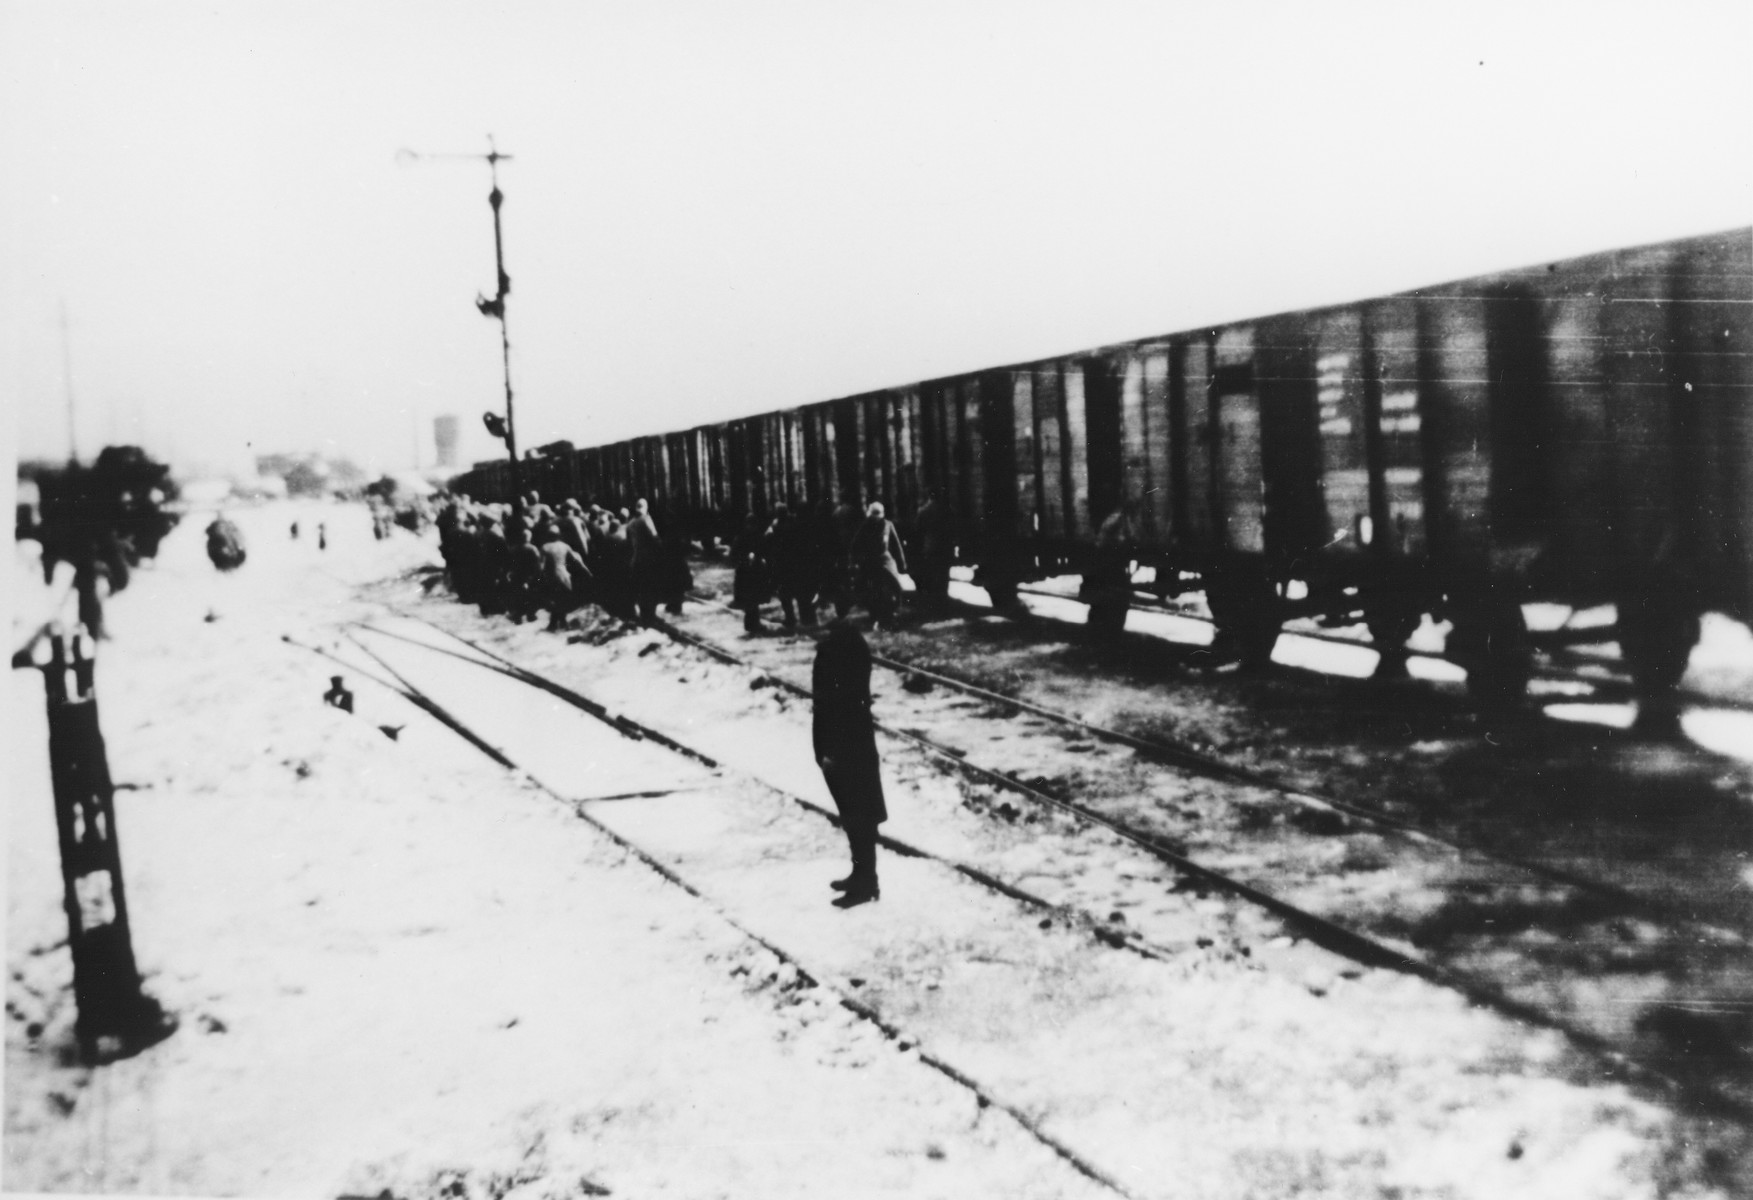 A German stands guards on a snow-covered railroad track as a group of Jews are led to a deportation train.